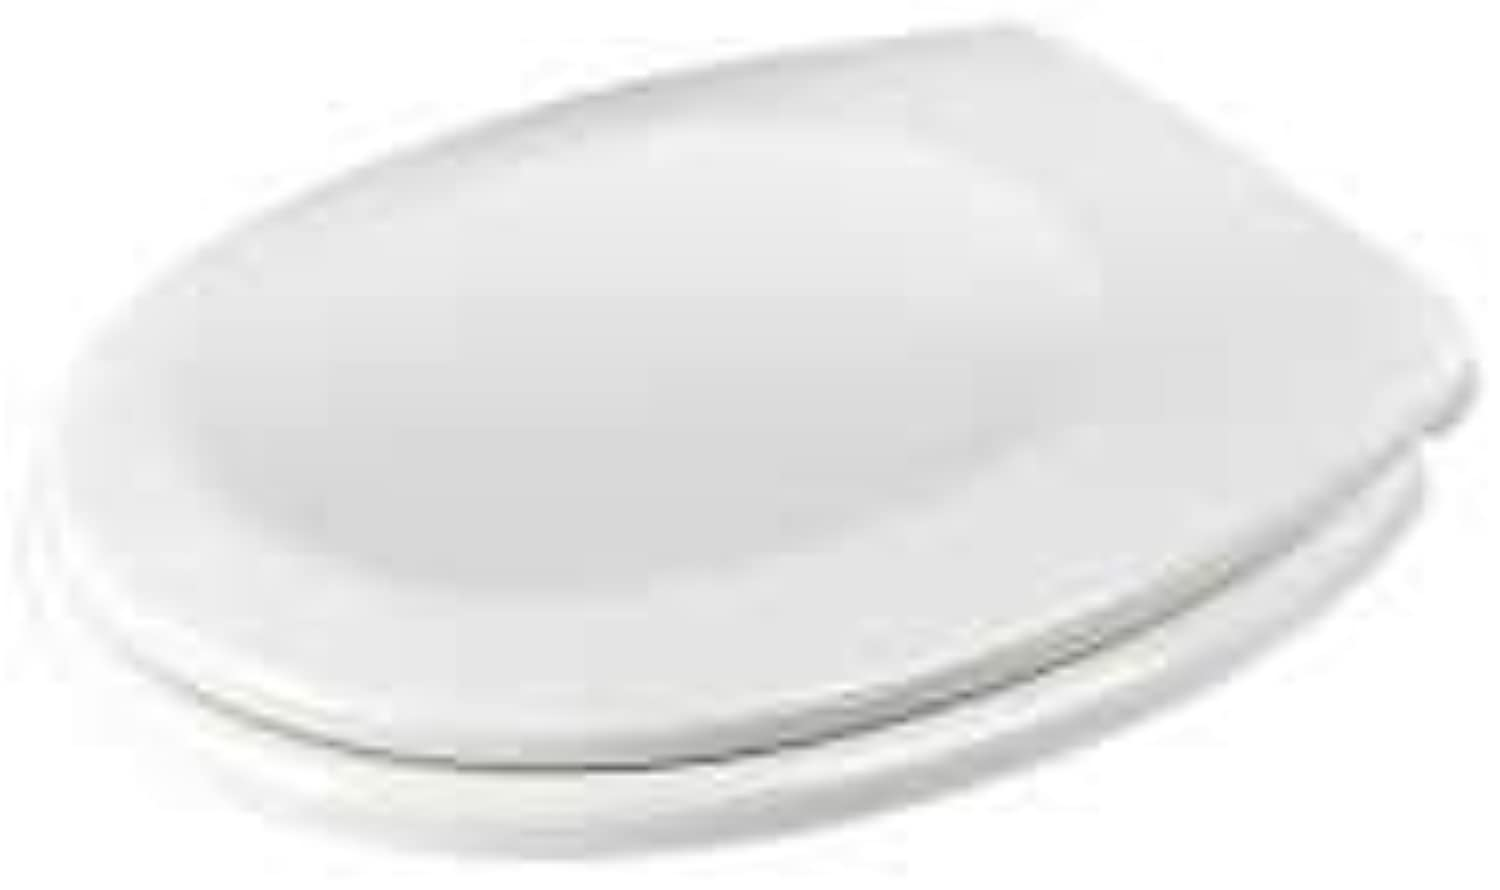 Toilet Seats O-Type Urea-Formaldehyde Resin Thicken Ultra Resistant Toilet CoverWith Cover Fitting Kits Suitable (White)